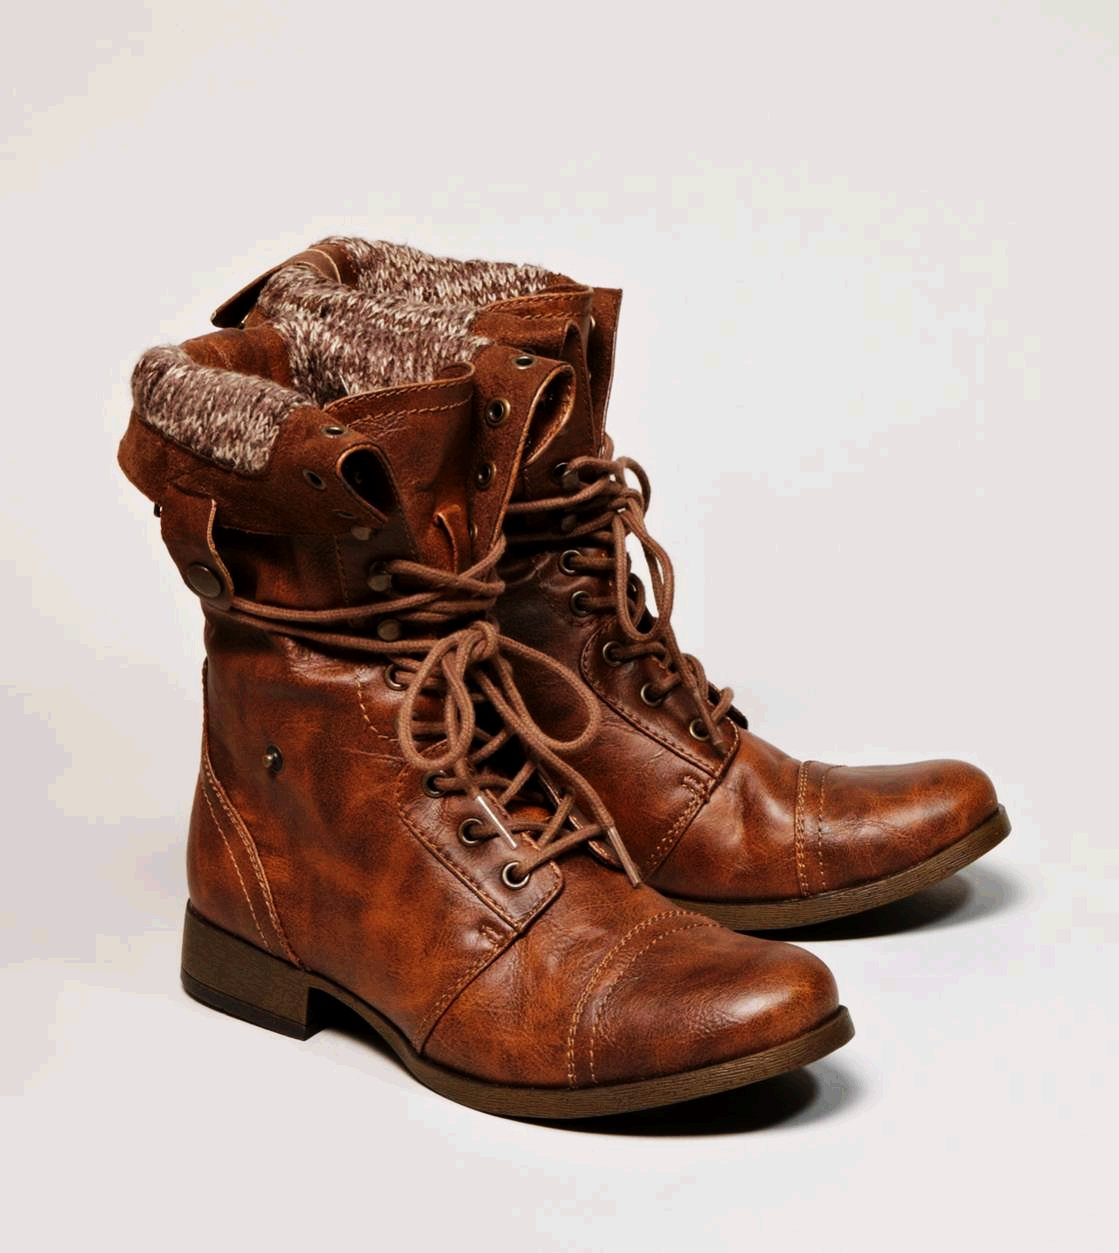 aeo lace-up boot  american eagle outfitters-f52312